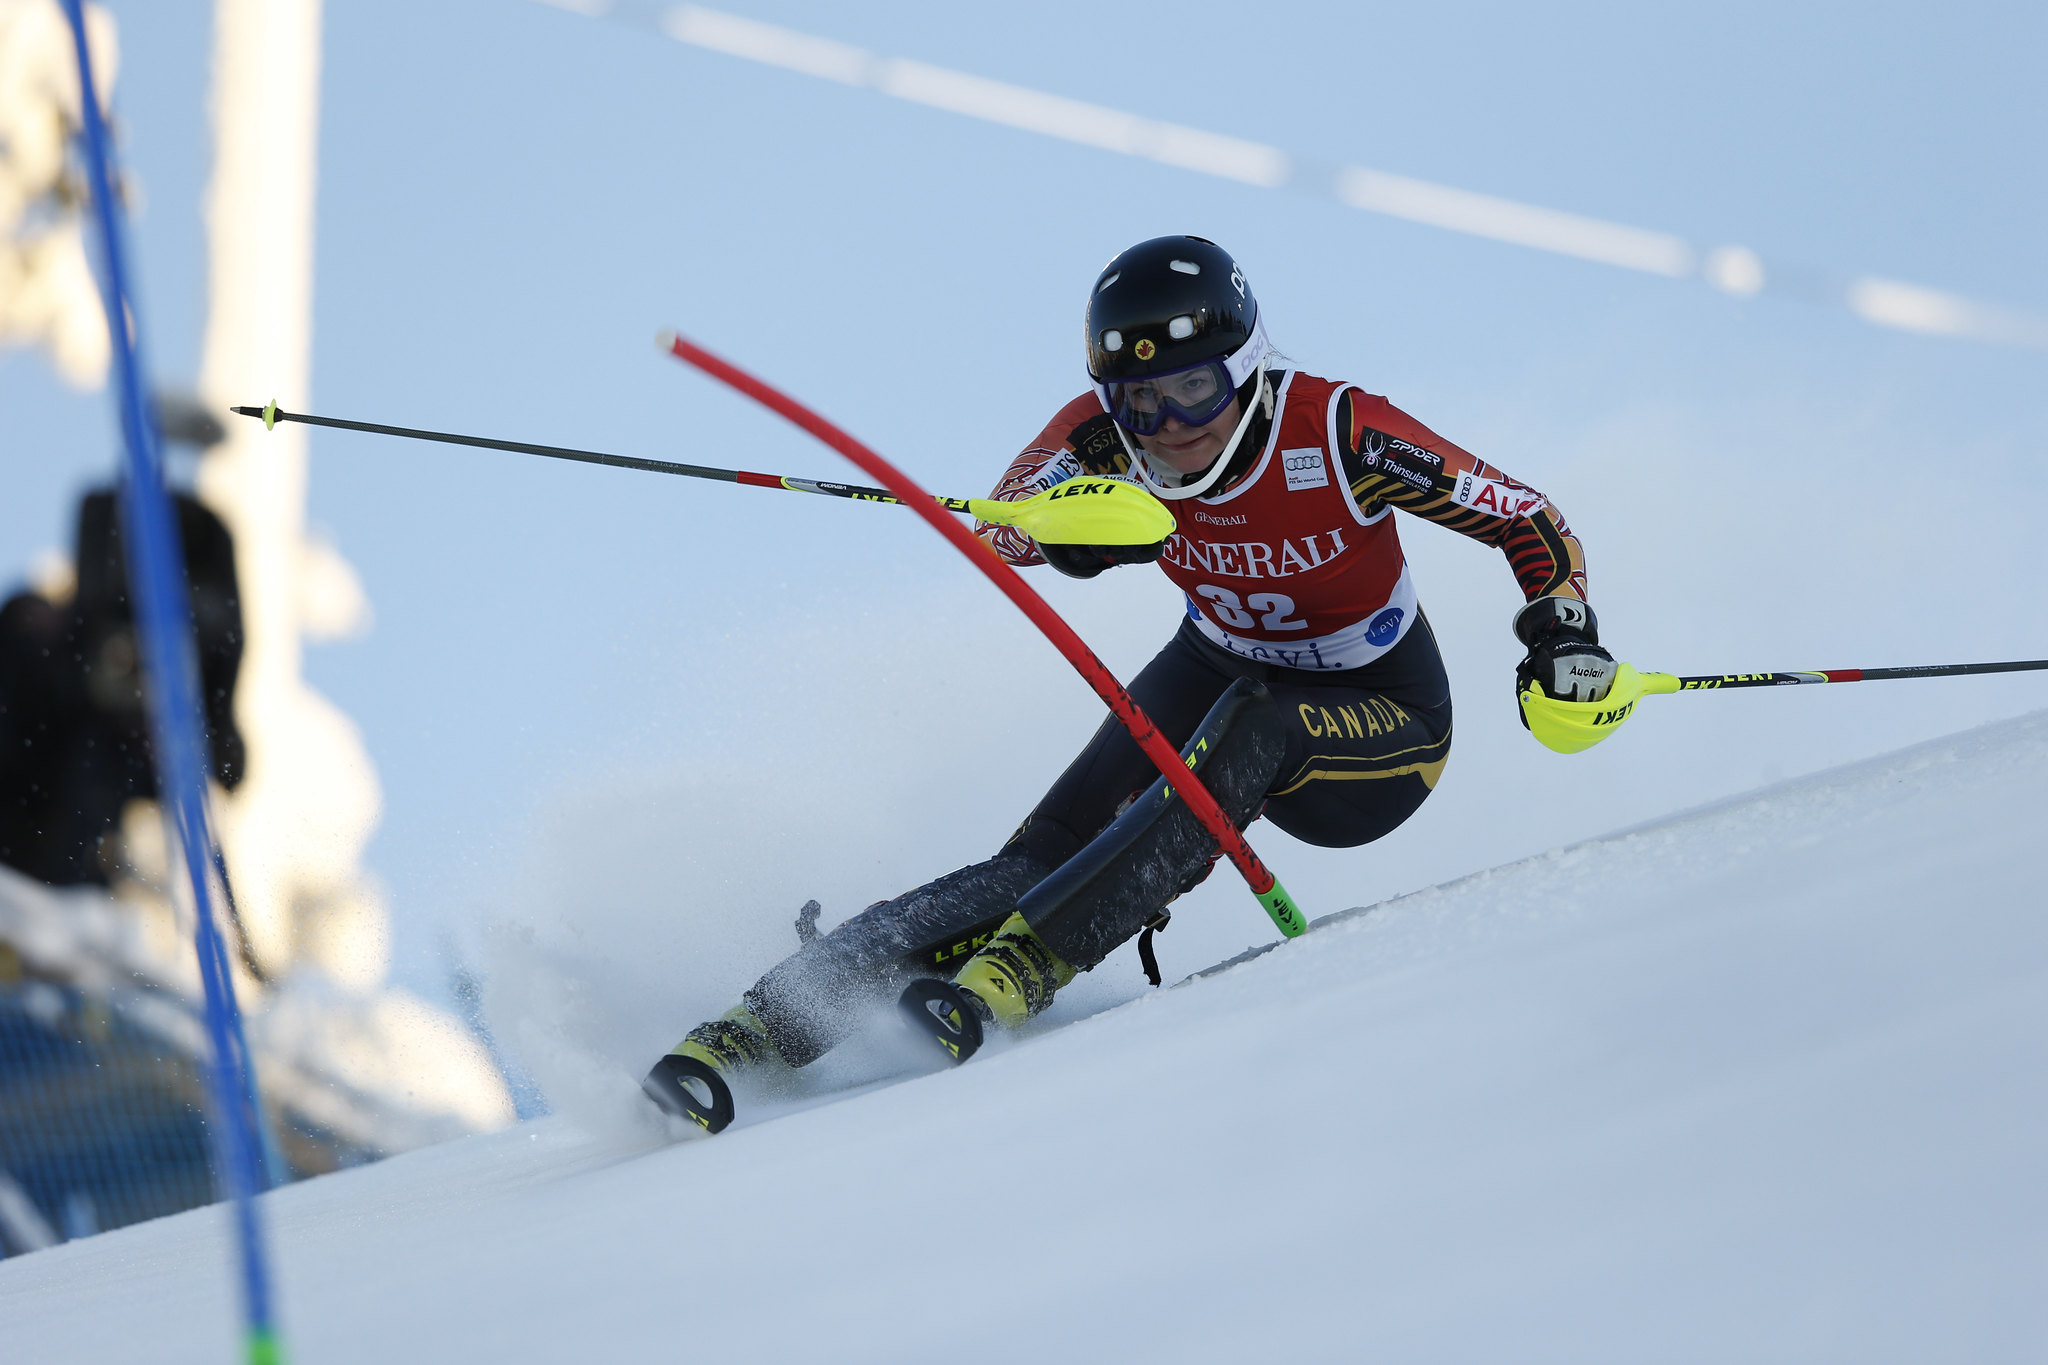 Elli Terwiel finesses her way to an 11th place finish in Levi, FIN.